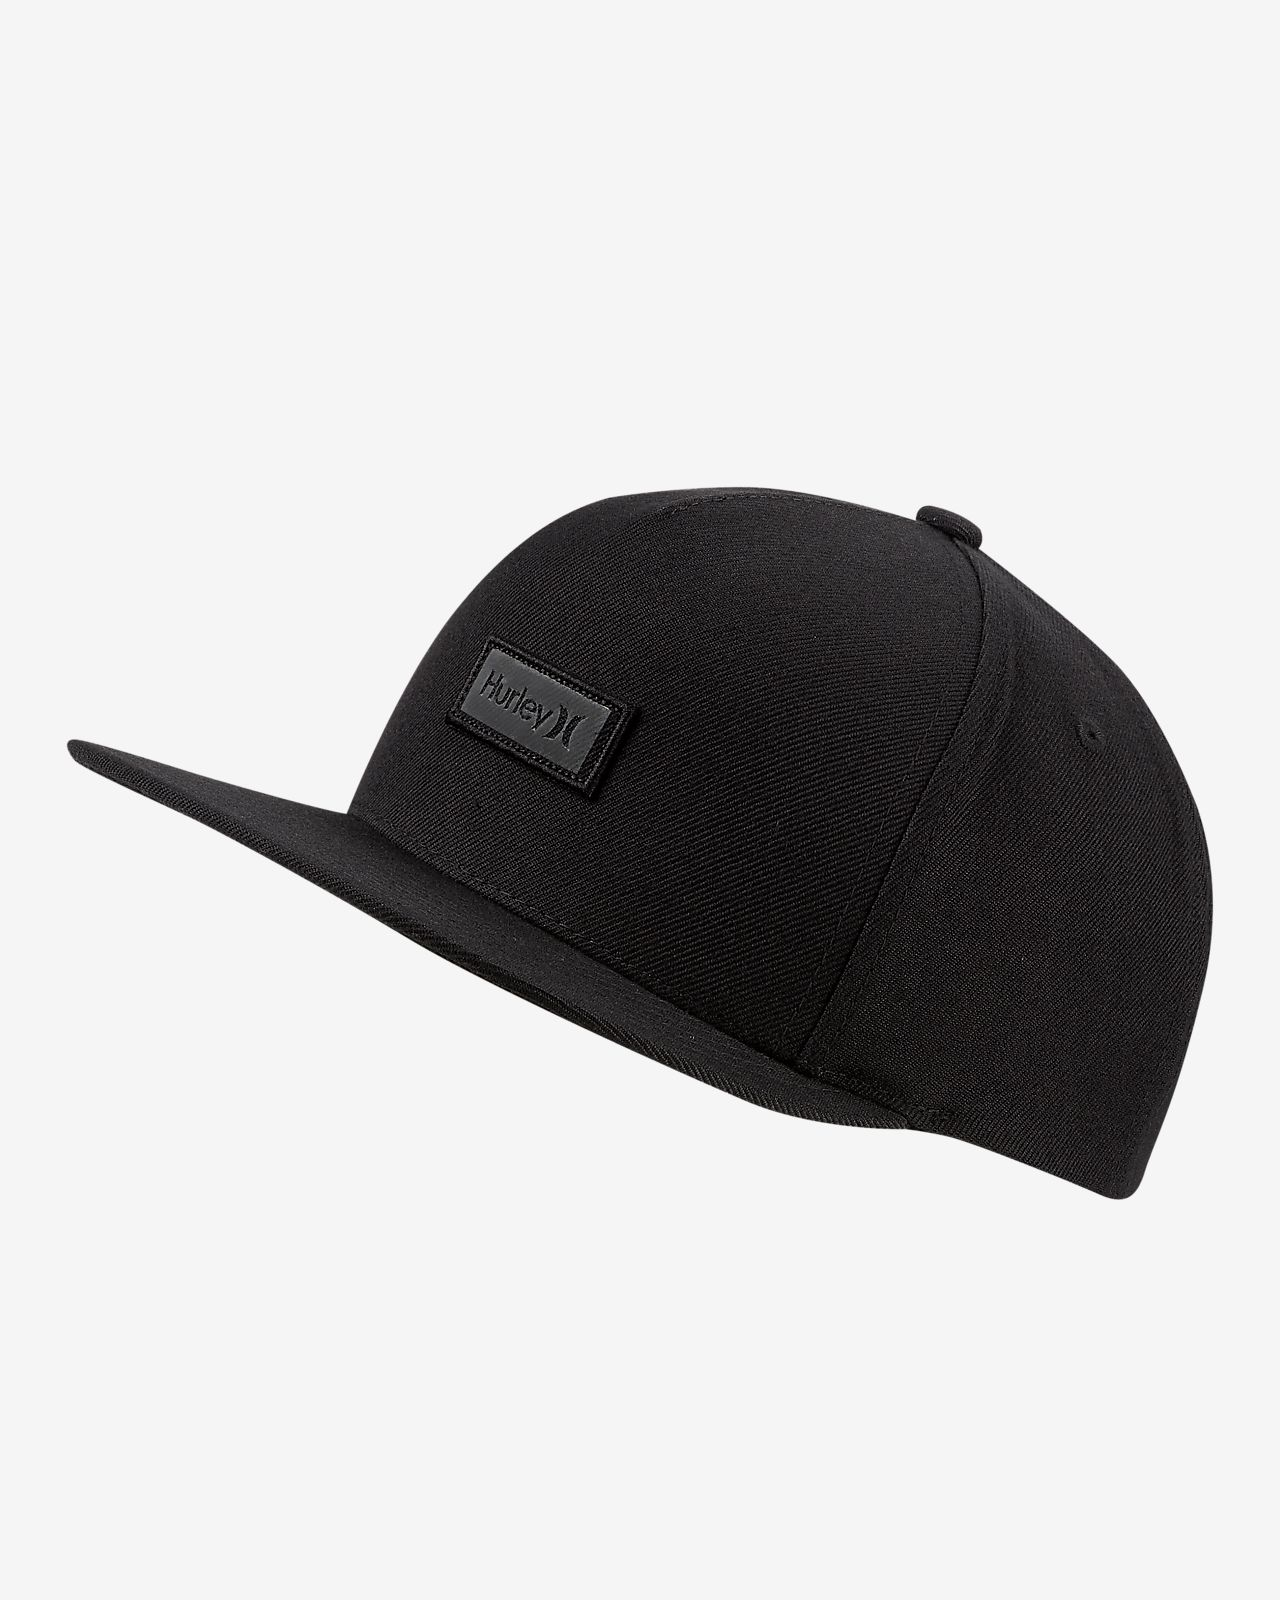 Hurley One And Only Boxed Reflective Herren-Cap